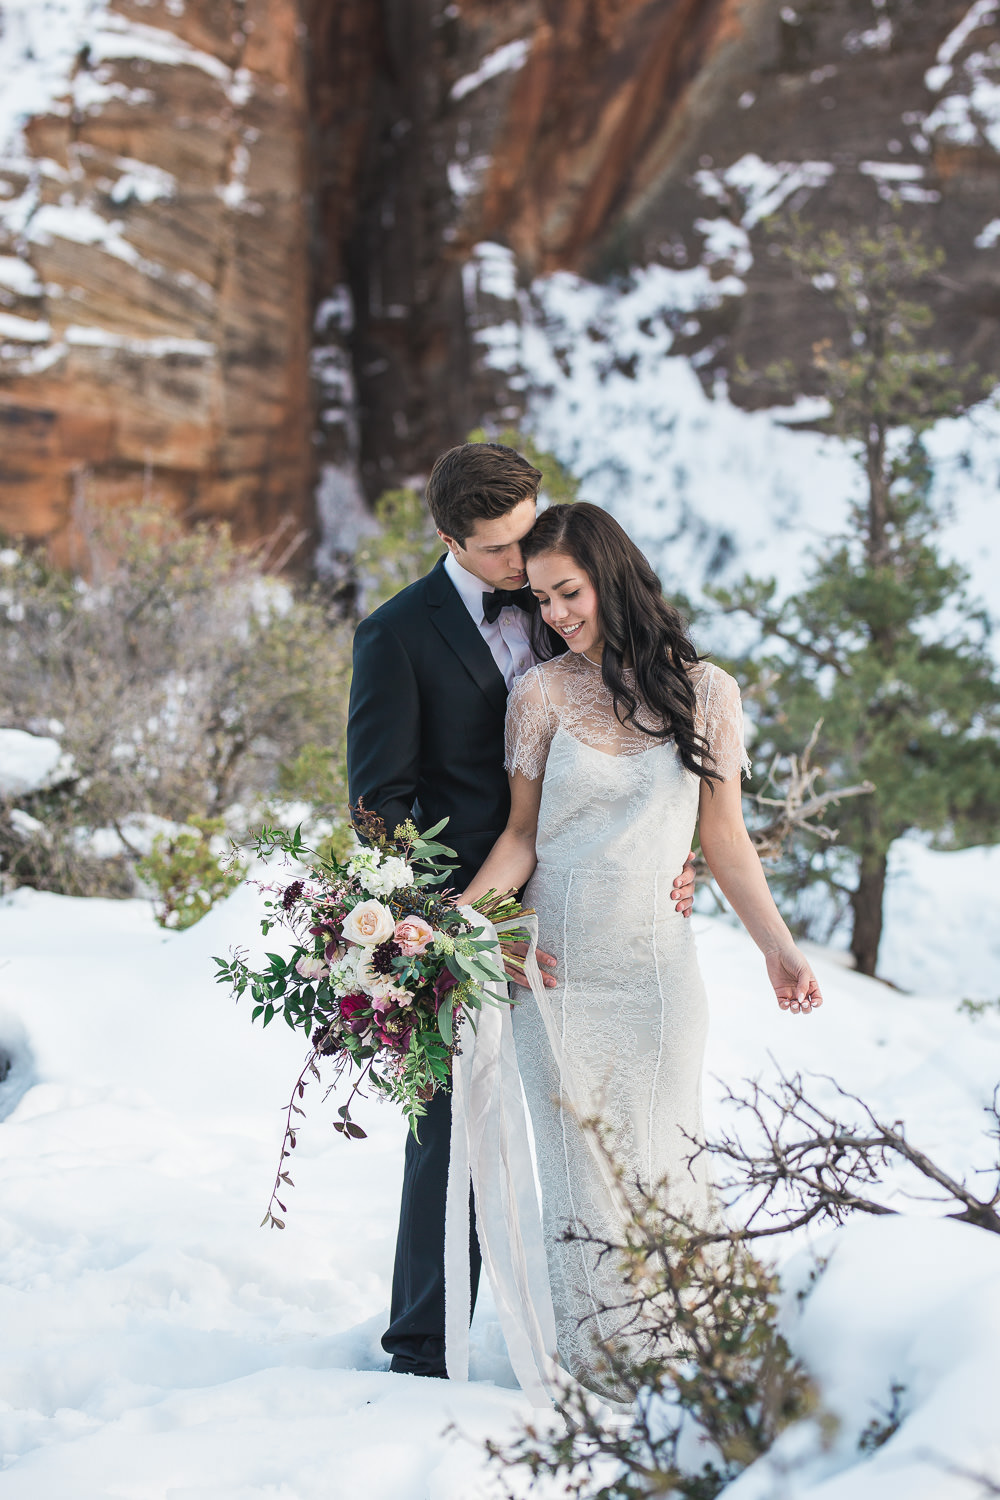 Bloomers florist silk bouquet Zion National Park elopement in winter